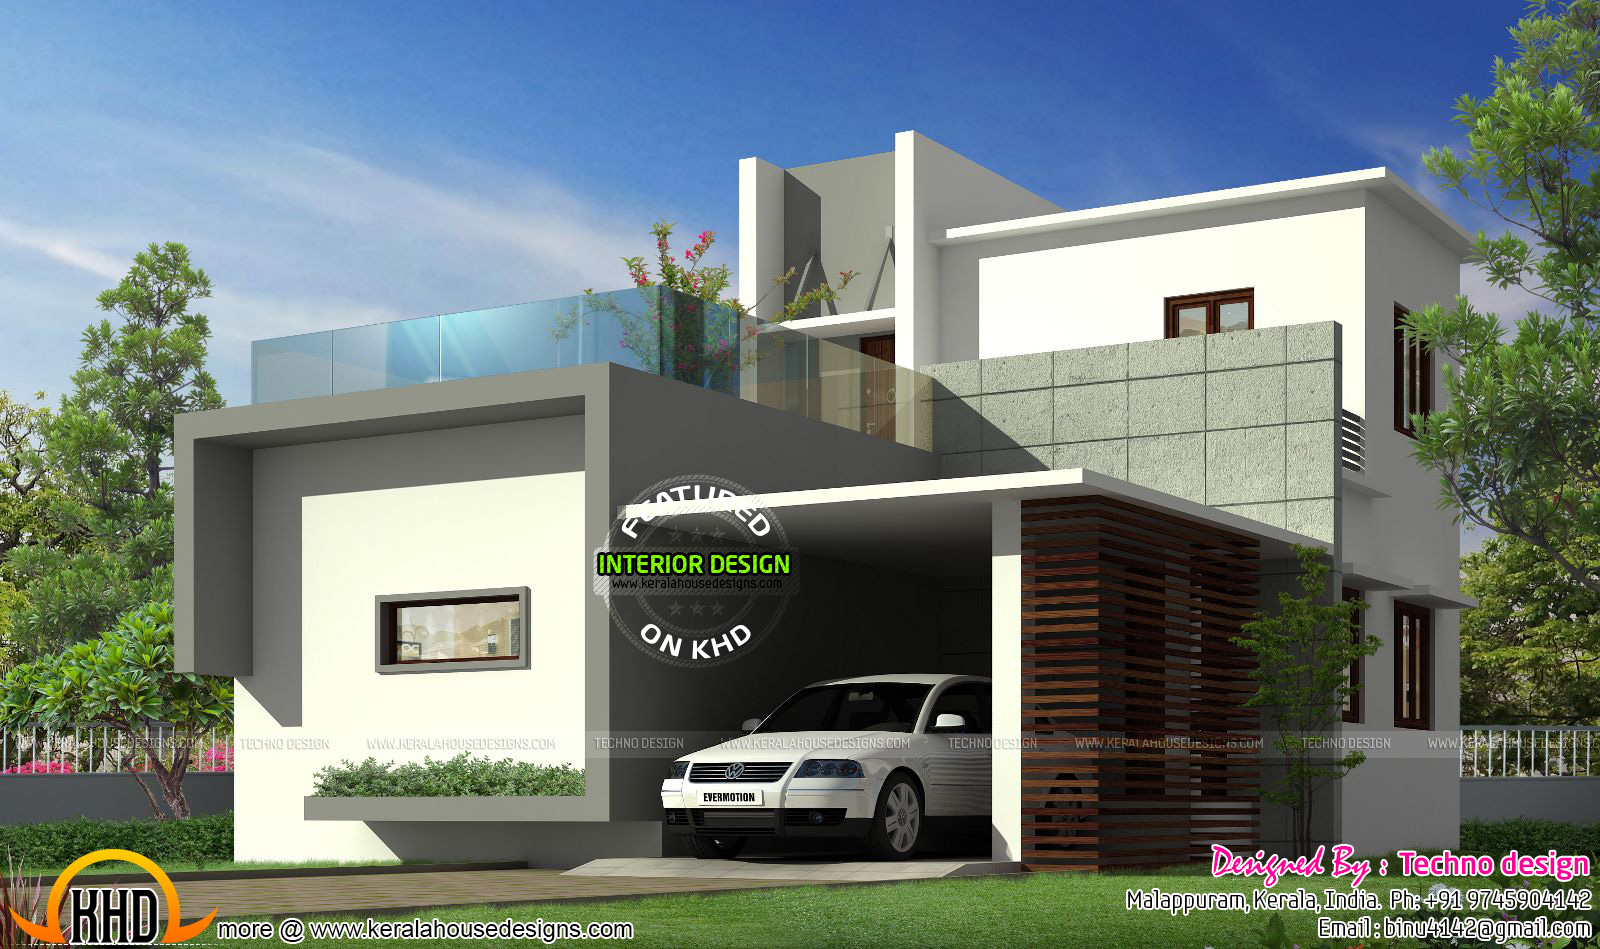 Detailed floor plans designed by experts to know more for Minimalist house kerala